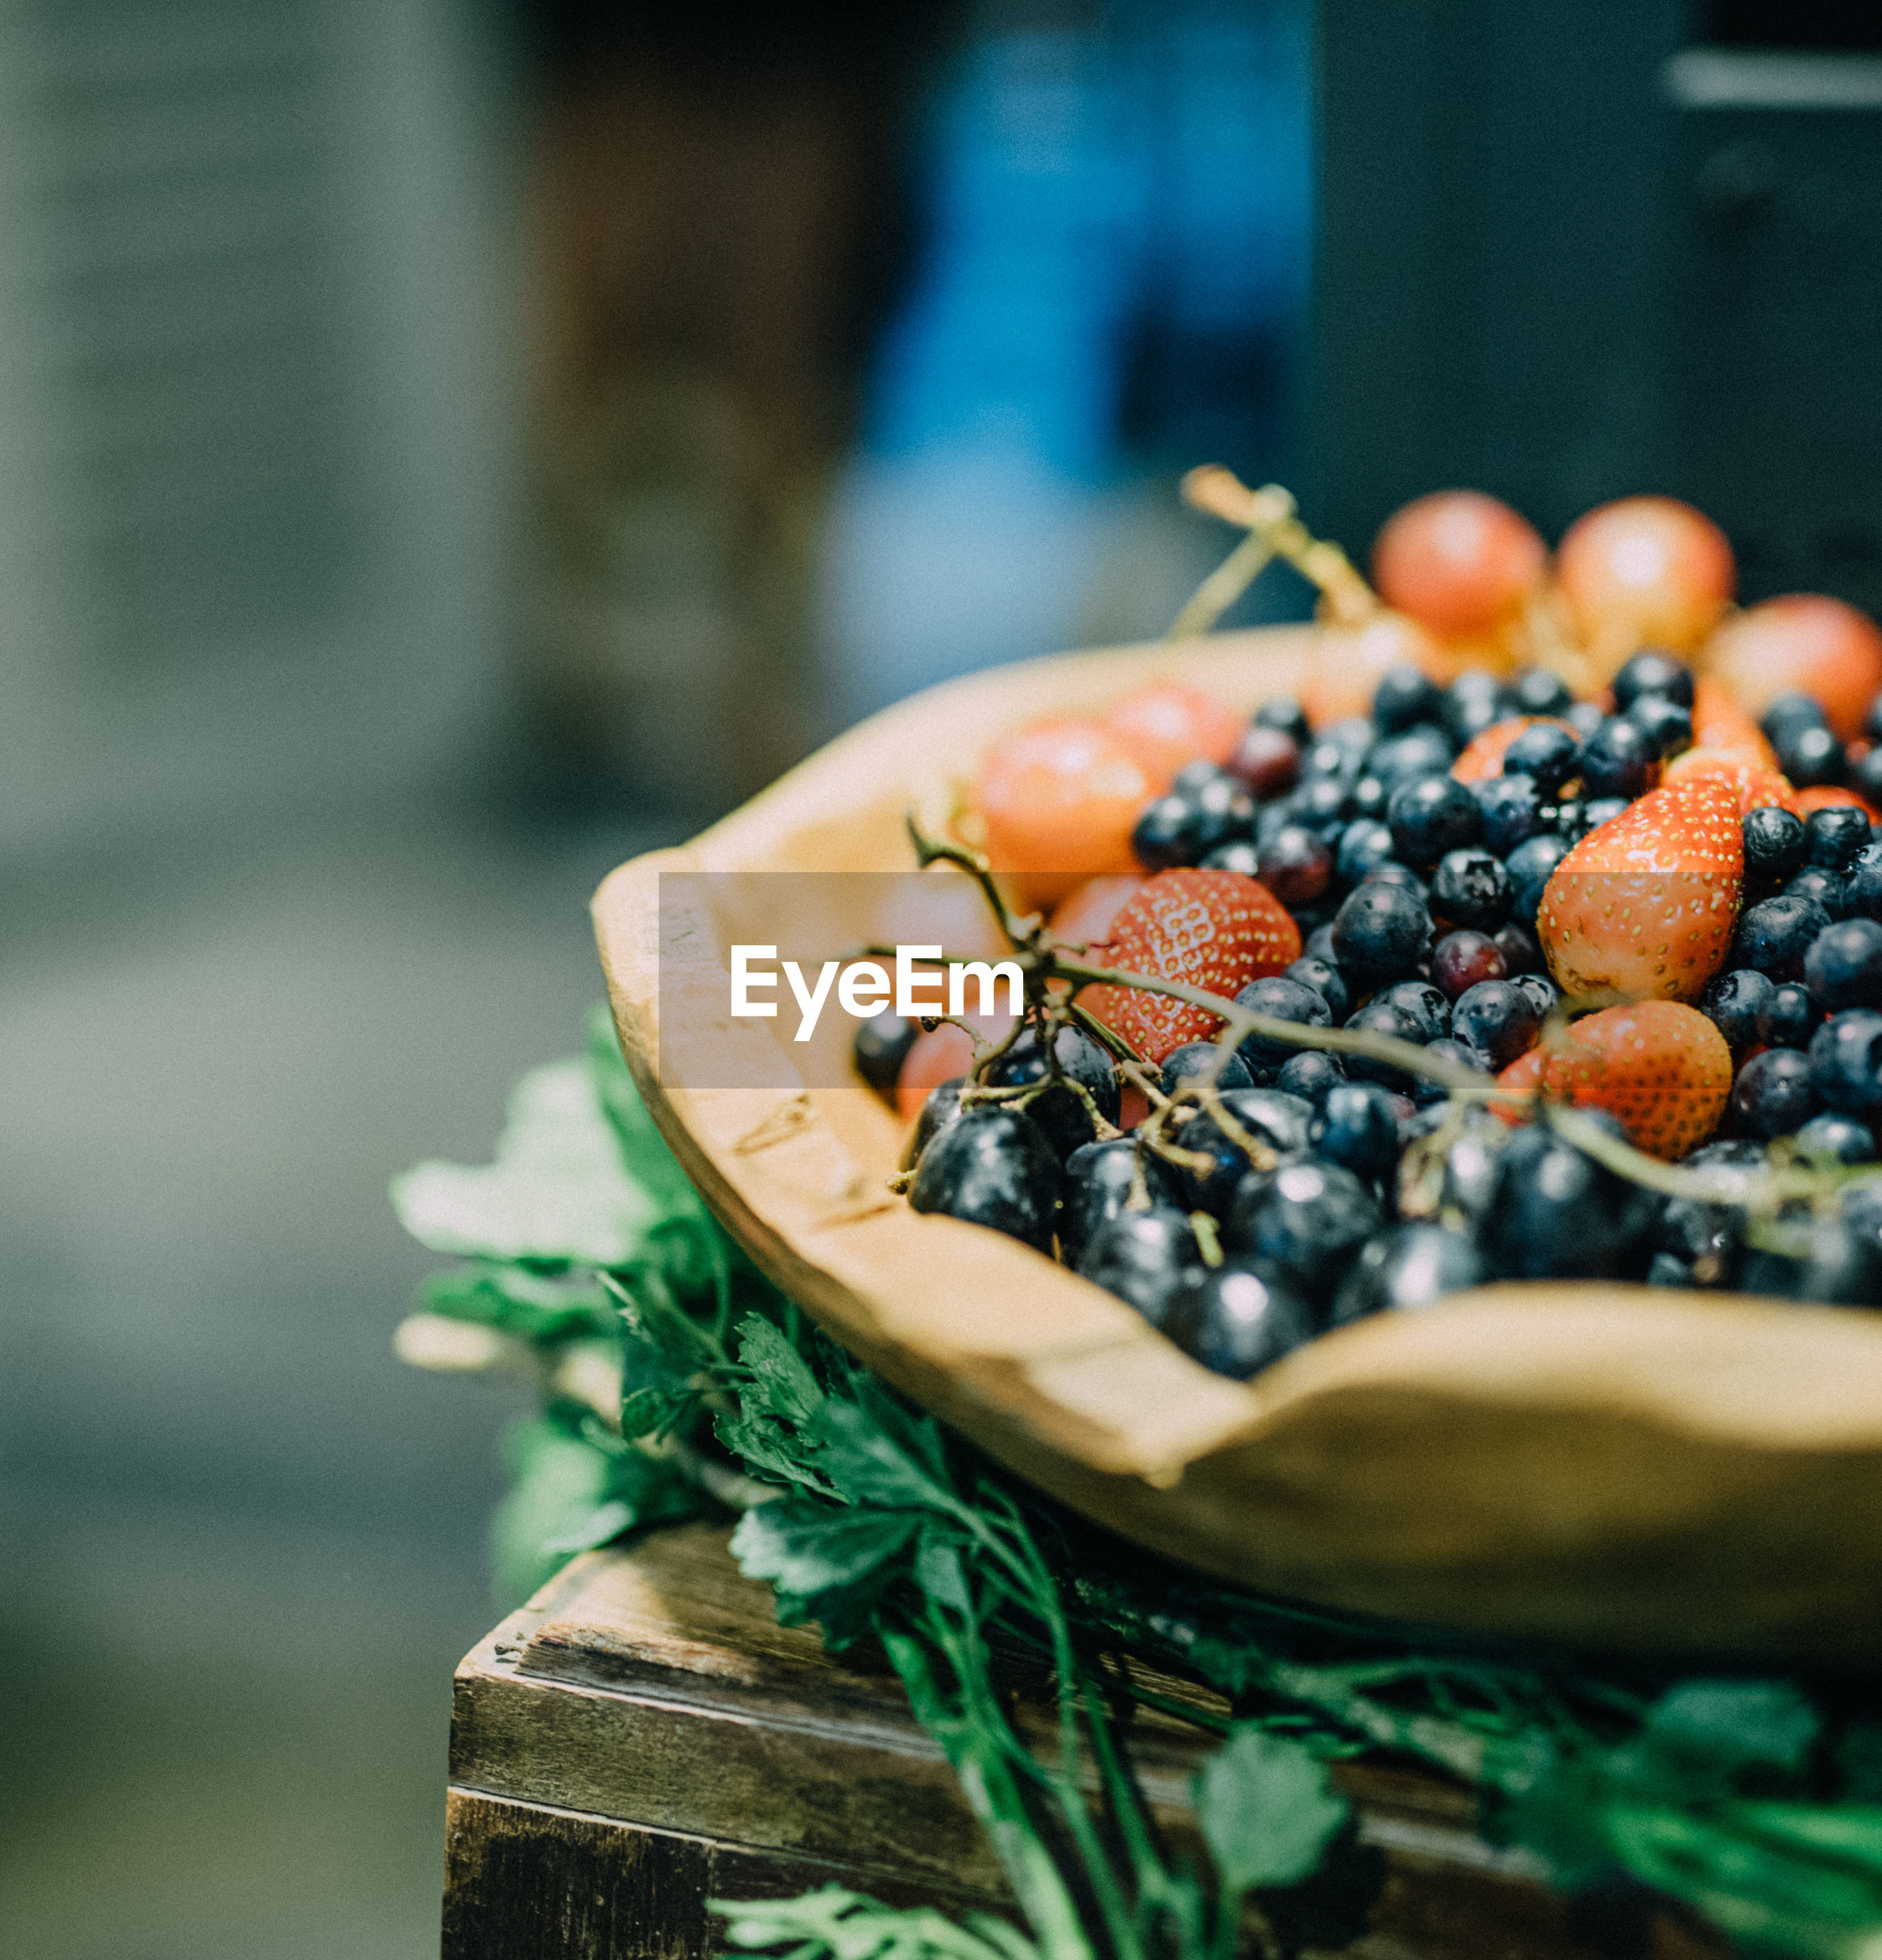 Close-up of berries in bowl on table